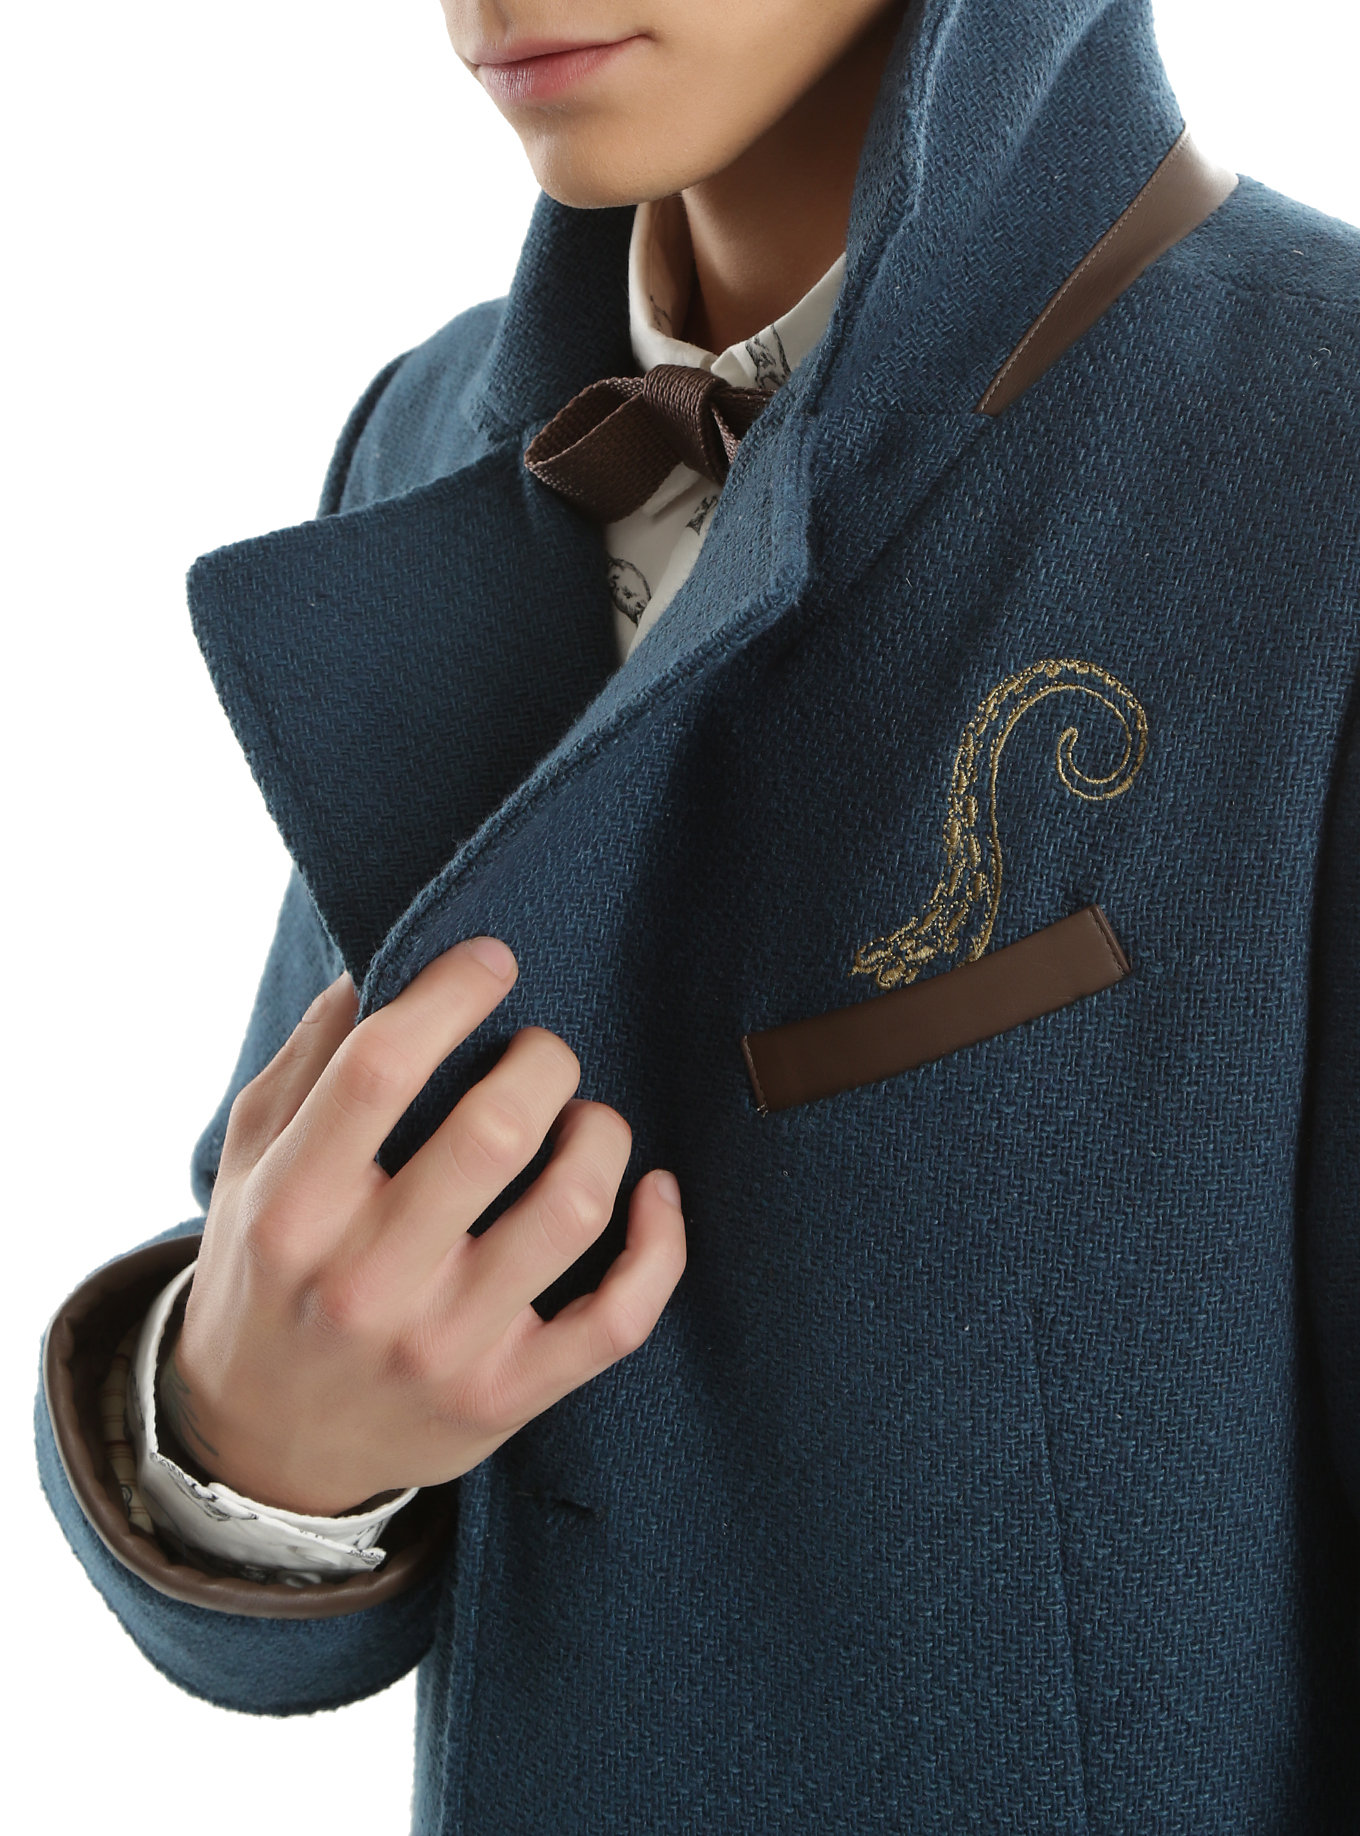 Catching Up With Newt >> Fantastic Beasts And Where To Find Them Newt Scamander Overcoat